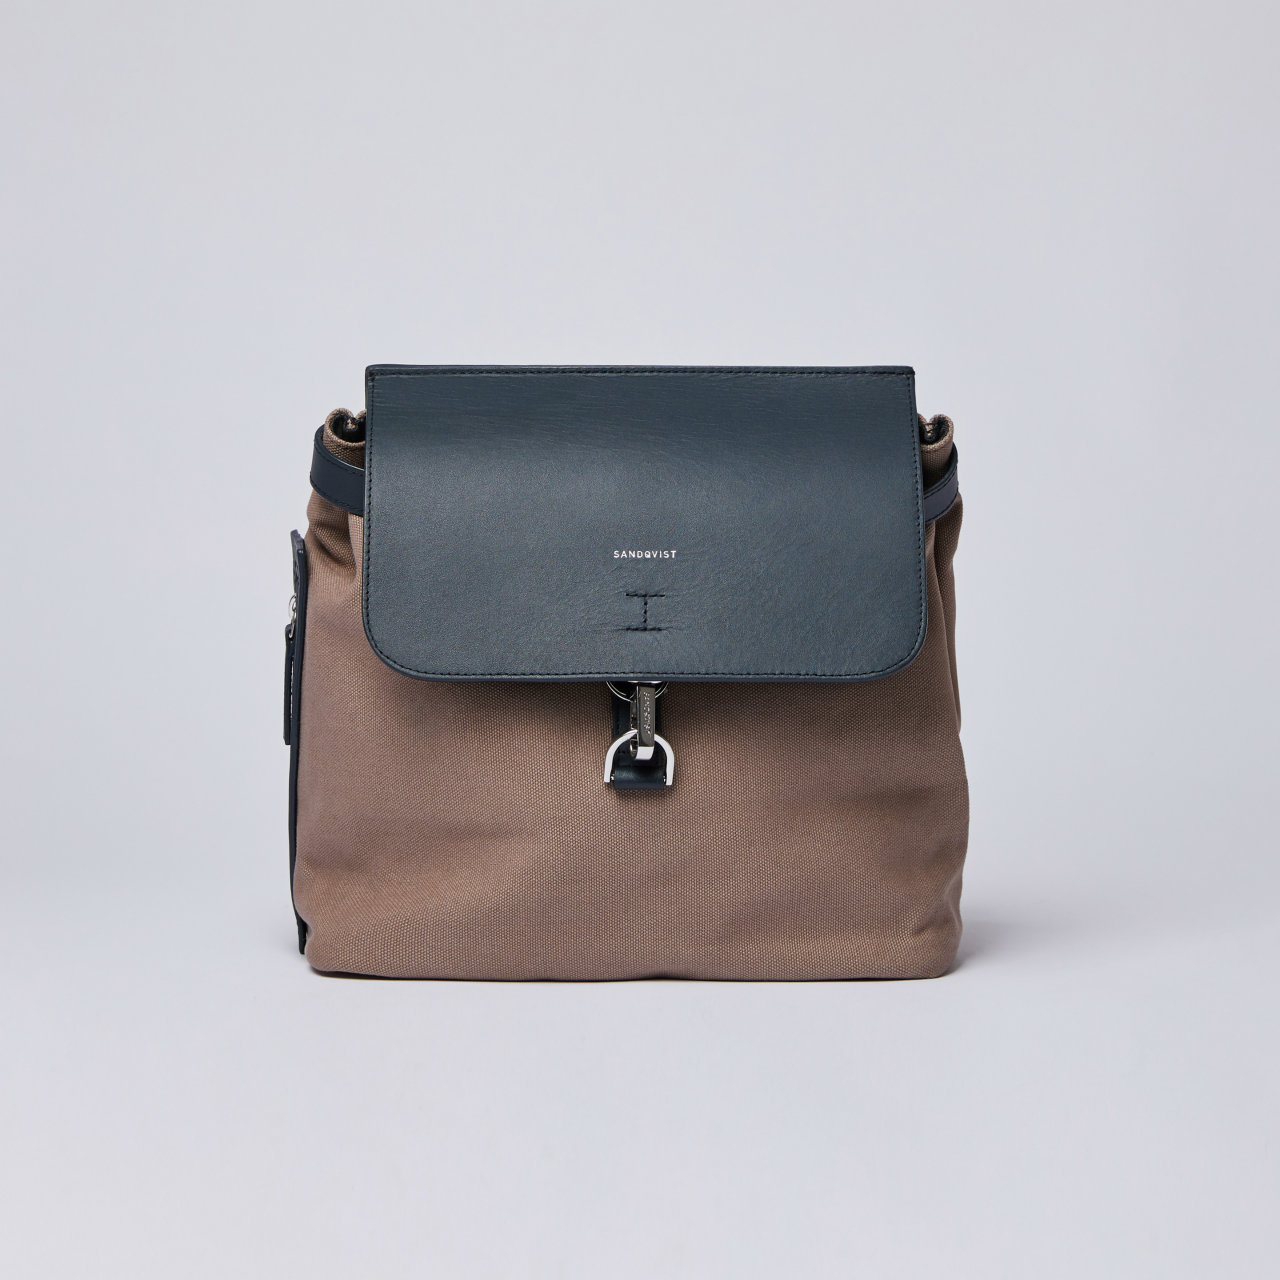 サムネイル:SANDQVIST VILDA W/ DOG HOOK アースブラウン(Earth Brown with Navy Leather)